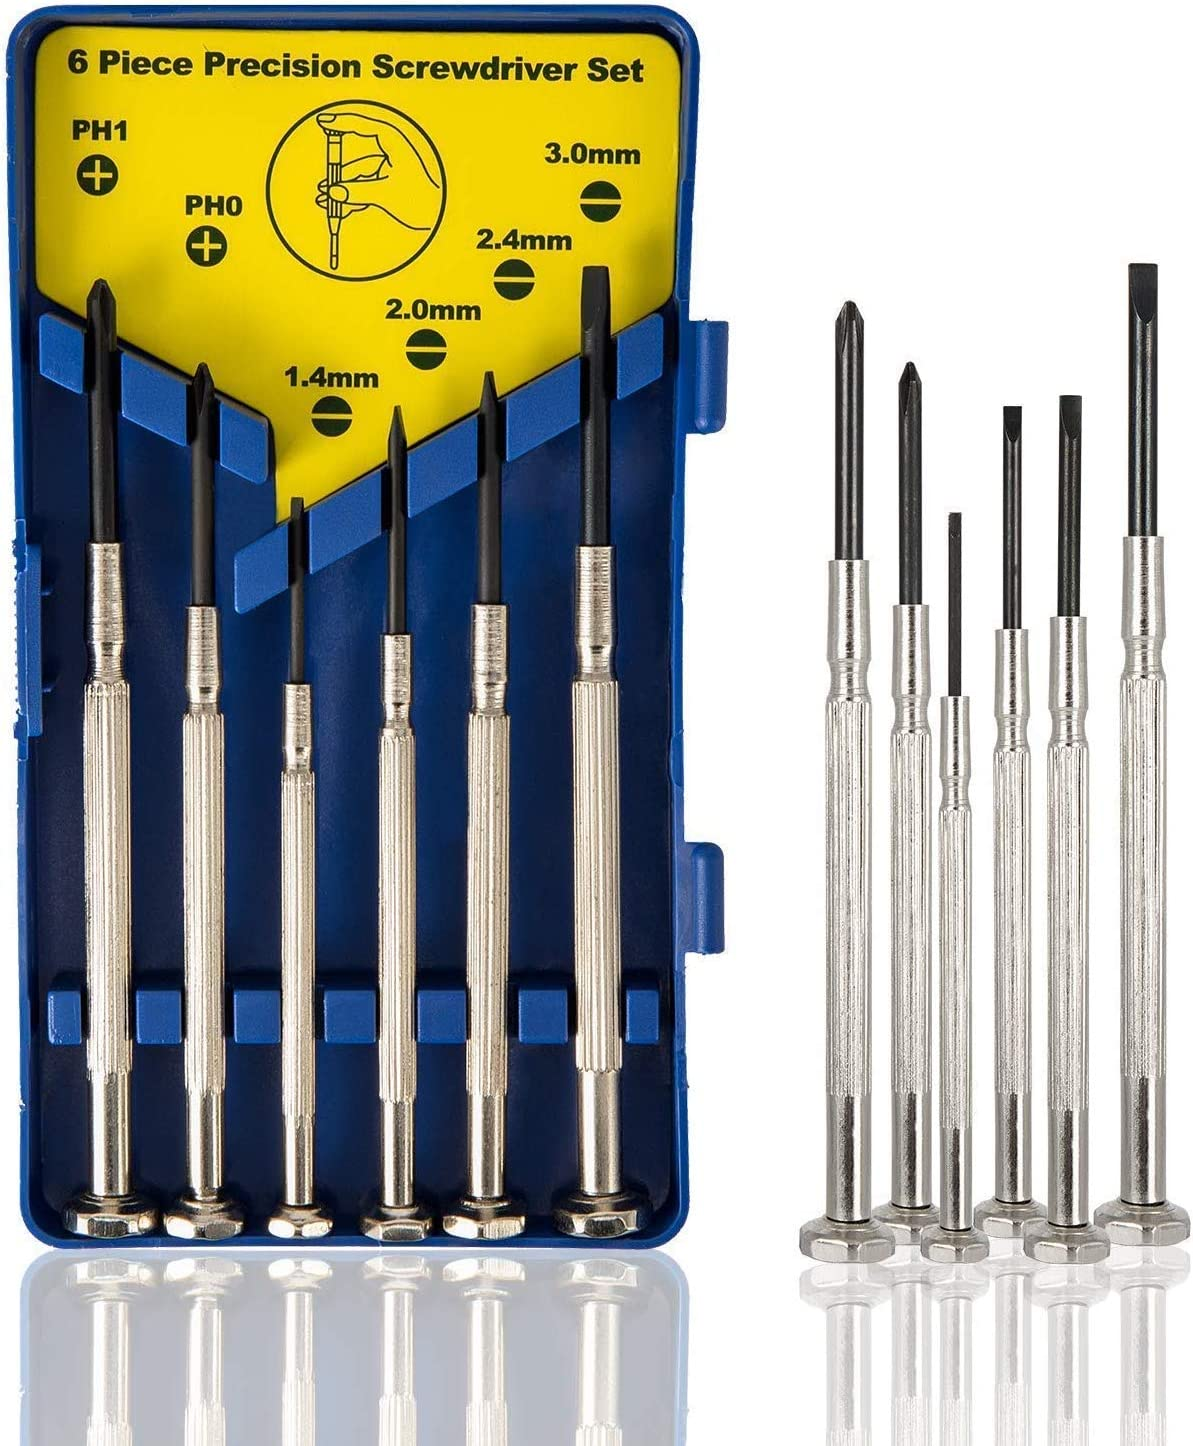 6Pcs Mini Screwdriver Set, Eyeglass Repair Screwdriver, Precision Repair Tool Kit with 6 Different Size Flathead and Philips Screwdrivers, Ideal for Watch, Jewelers: Home Improvement